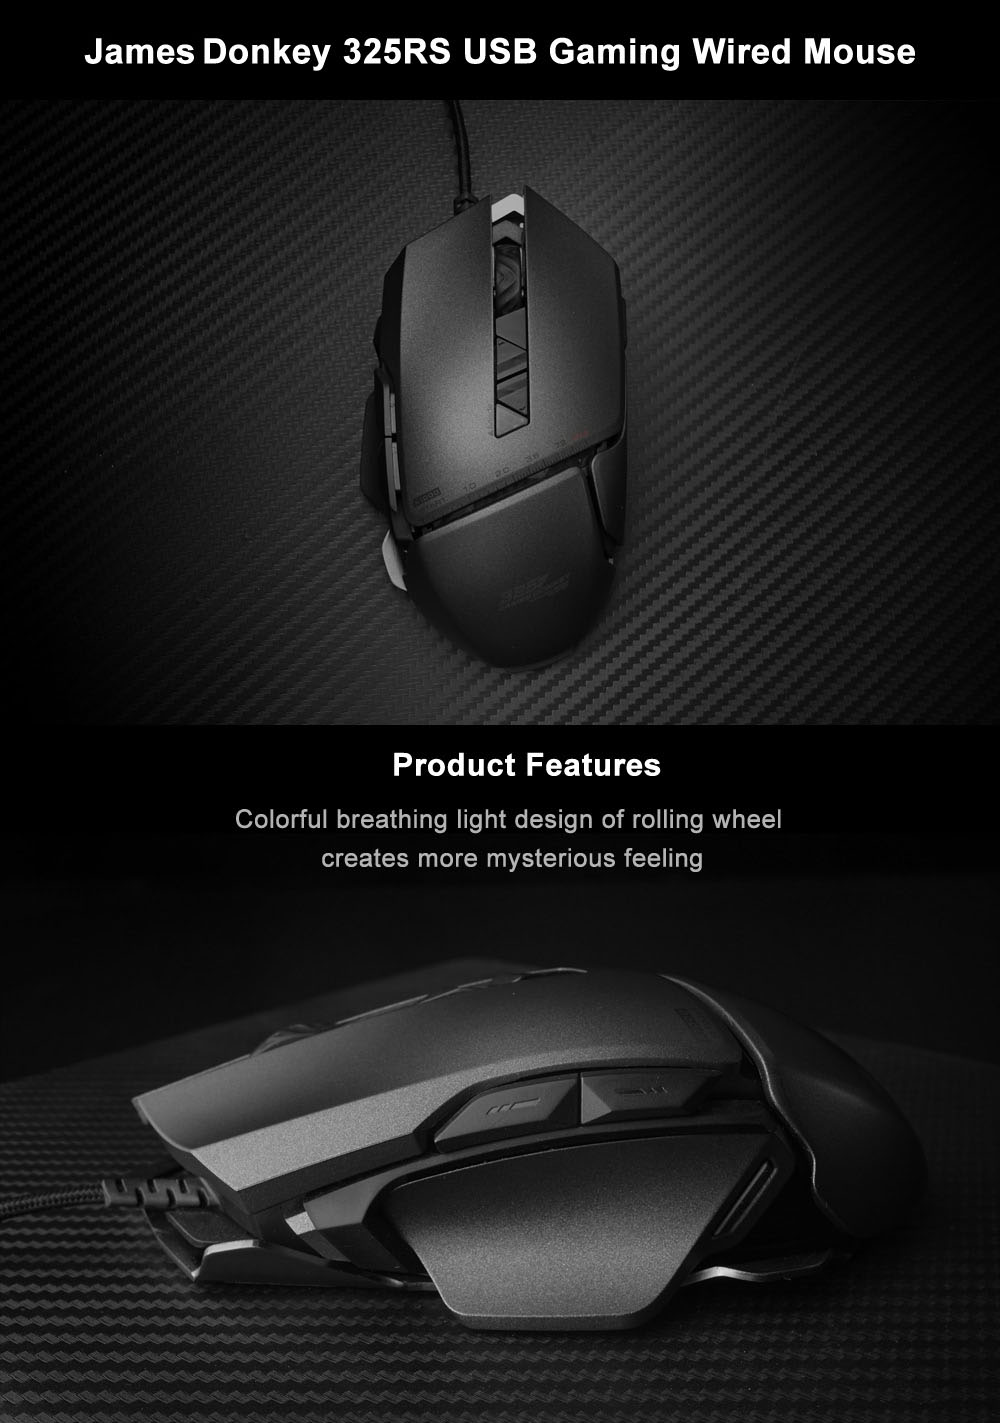 James Donkey 325rs Usb Gaming Wired Mouse 3282 Free Shipping Optic Laser 5 Tombol With Led Backlight Iron Grey